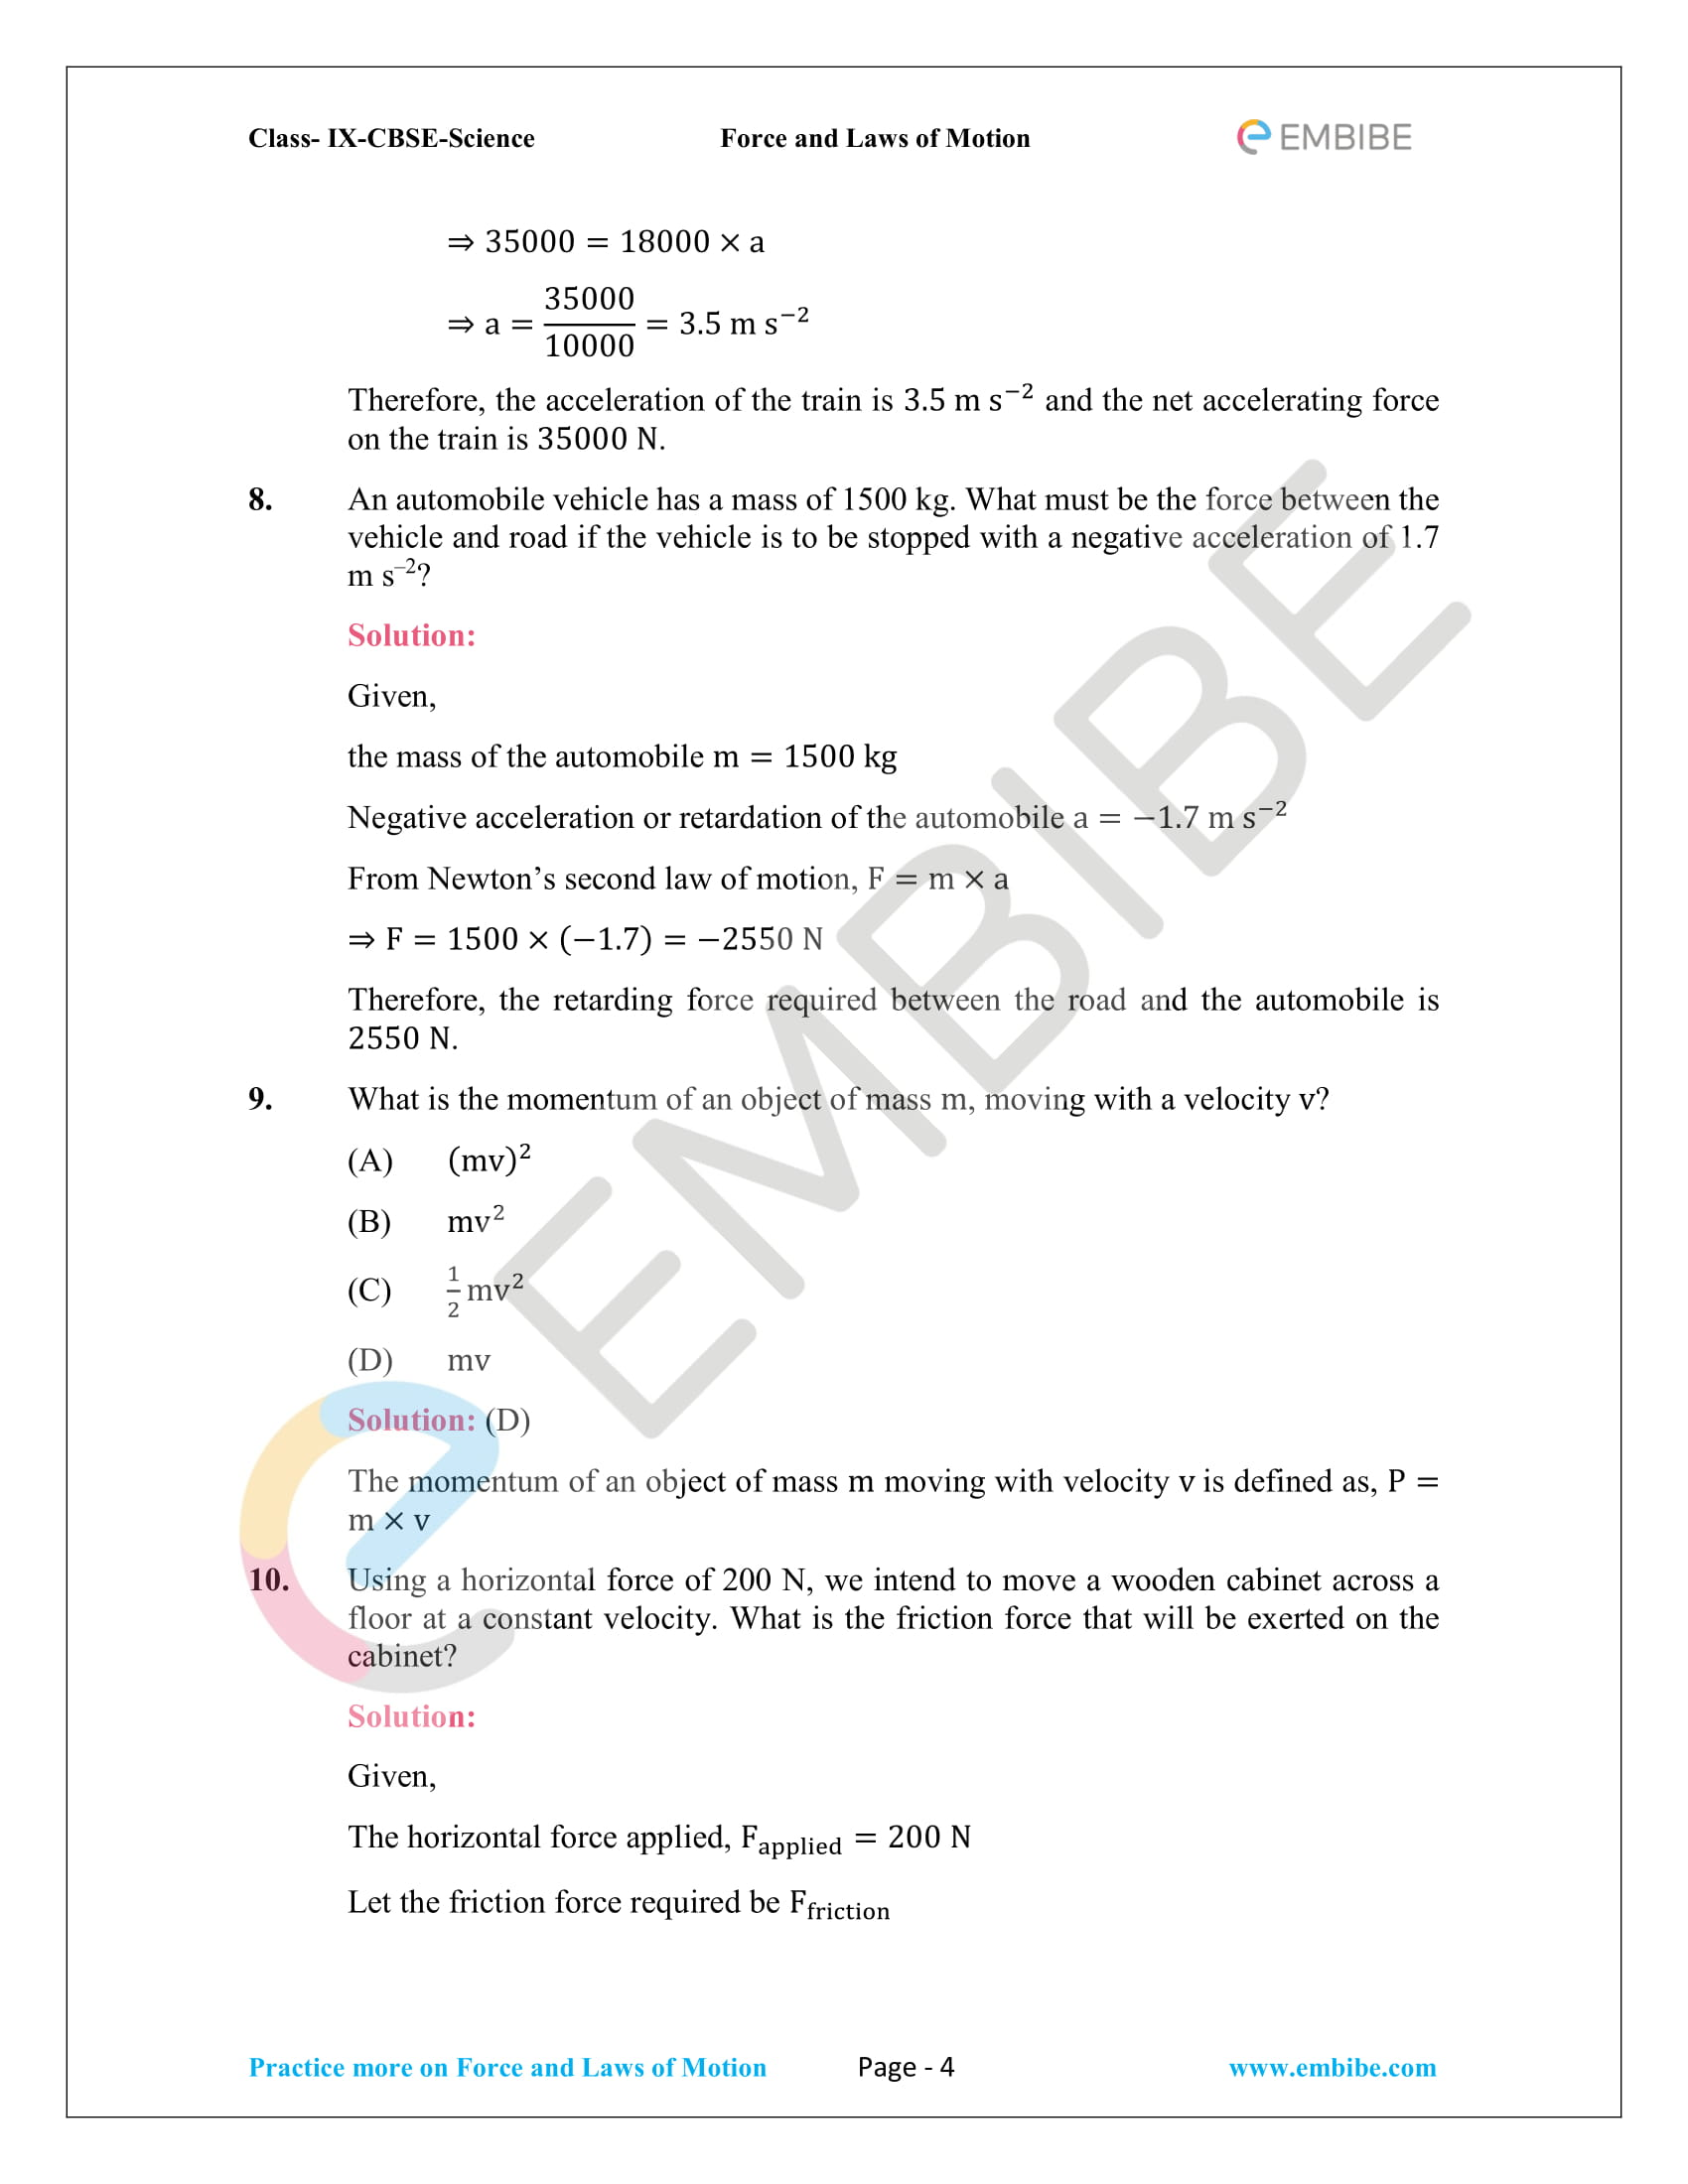 CBSE NCERT Solutions For Class 9 Science Chapter 9 – Force And Laws Of Motion - 4